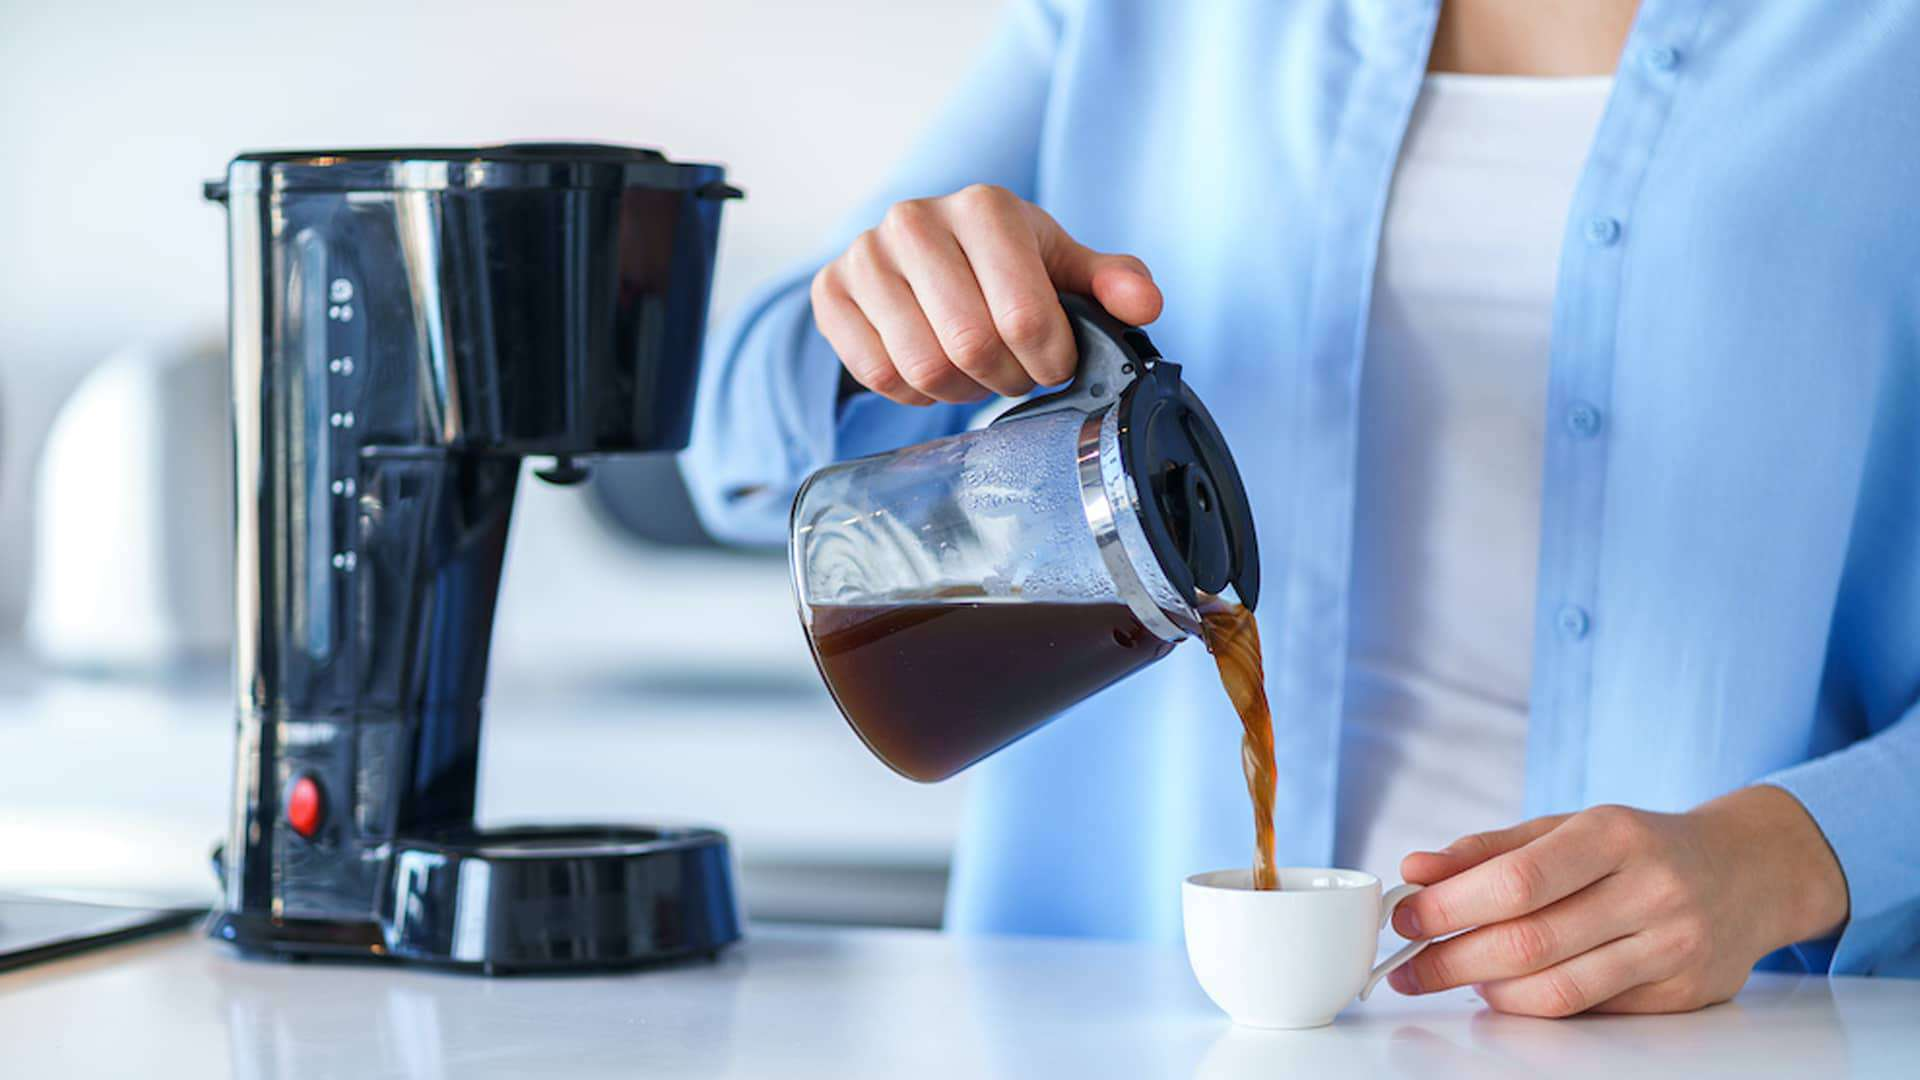 how to dispose of a coffee maker